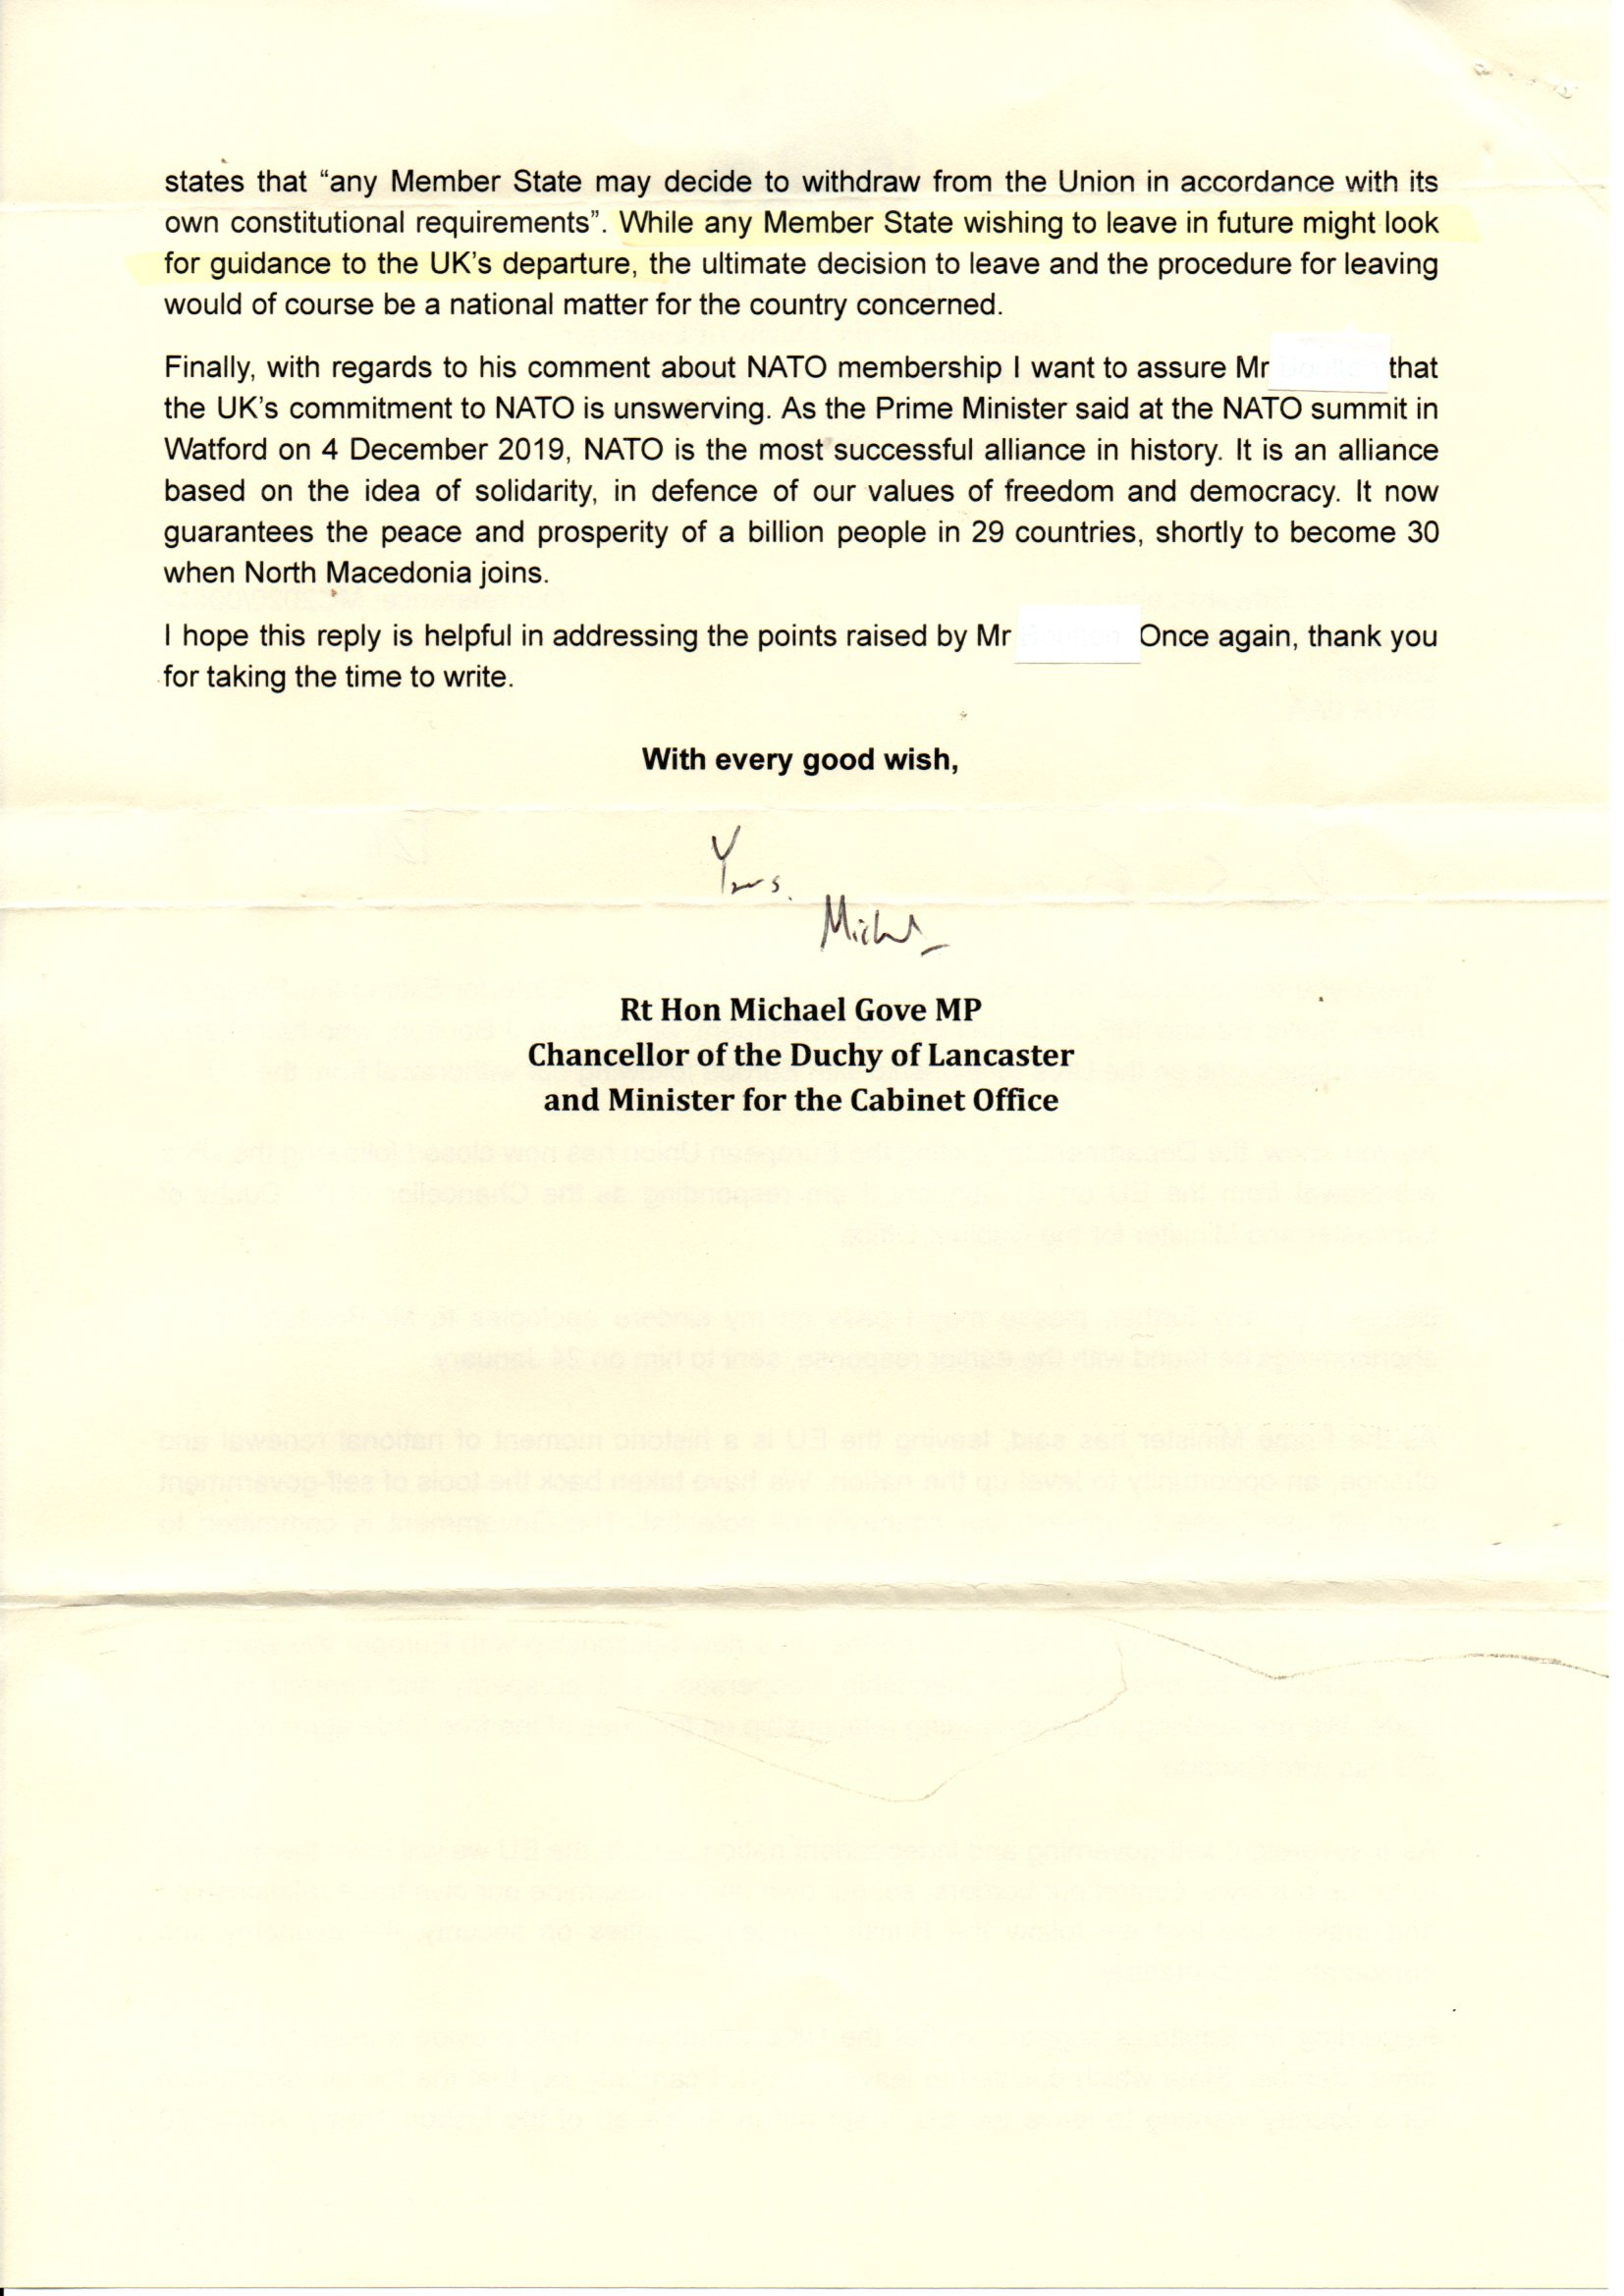 NEC 2 from Gove.jpg